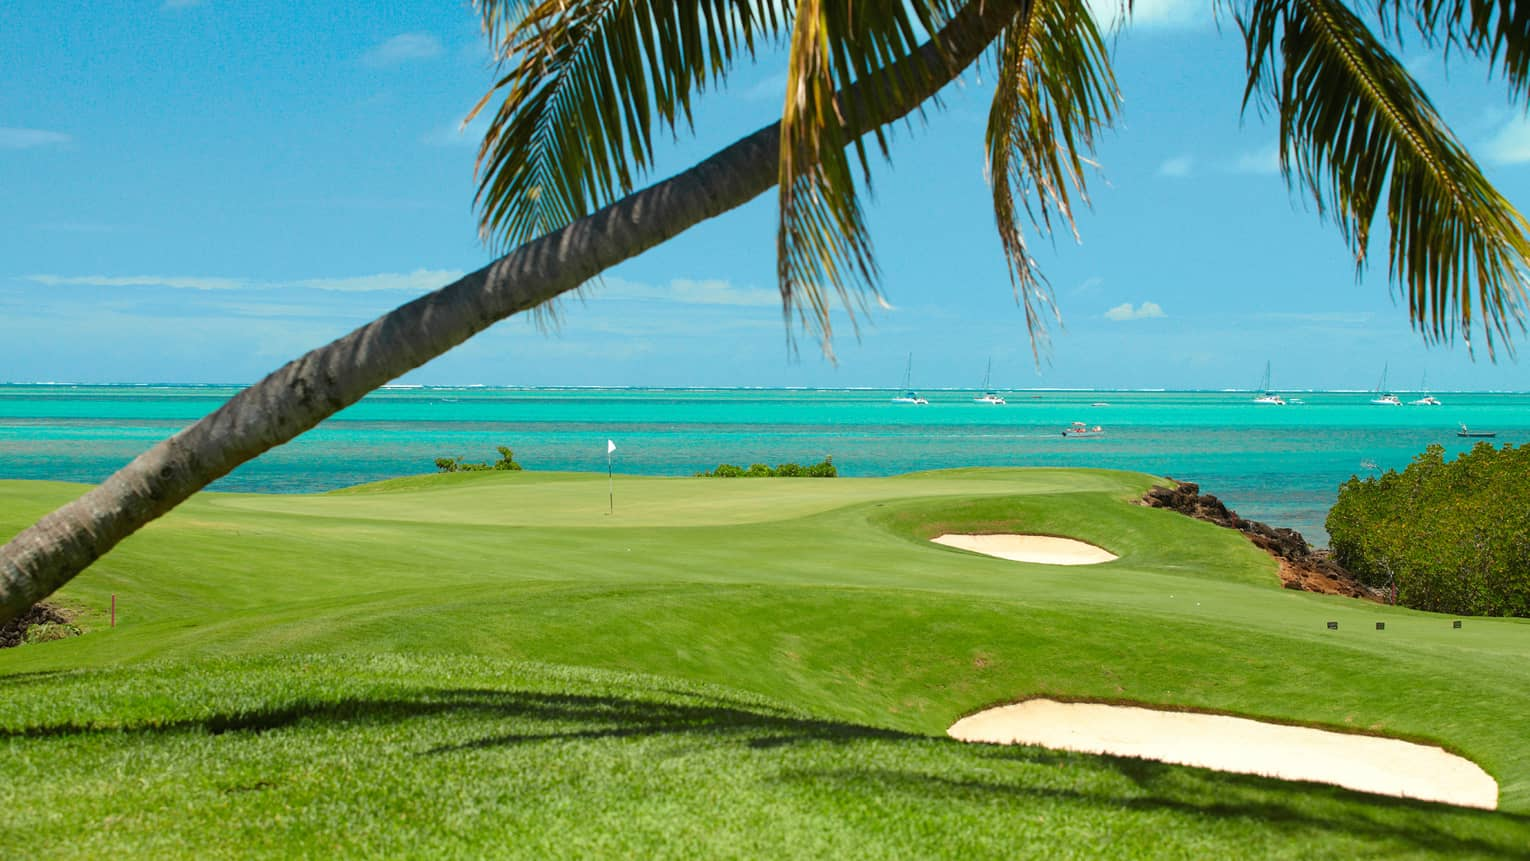 Palm tree hangs over golf course green, turquoise ocean in background